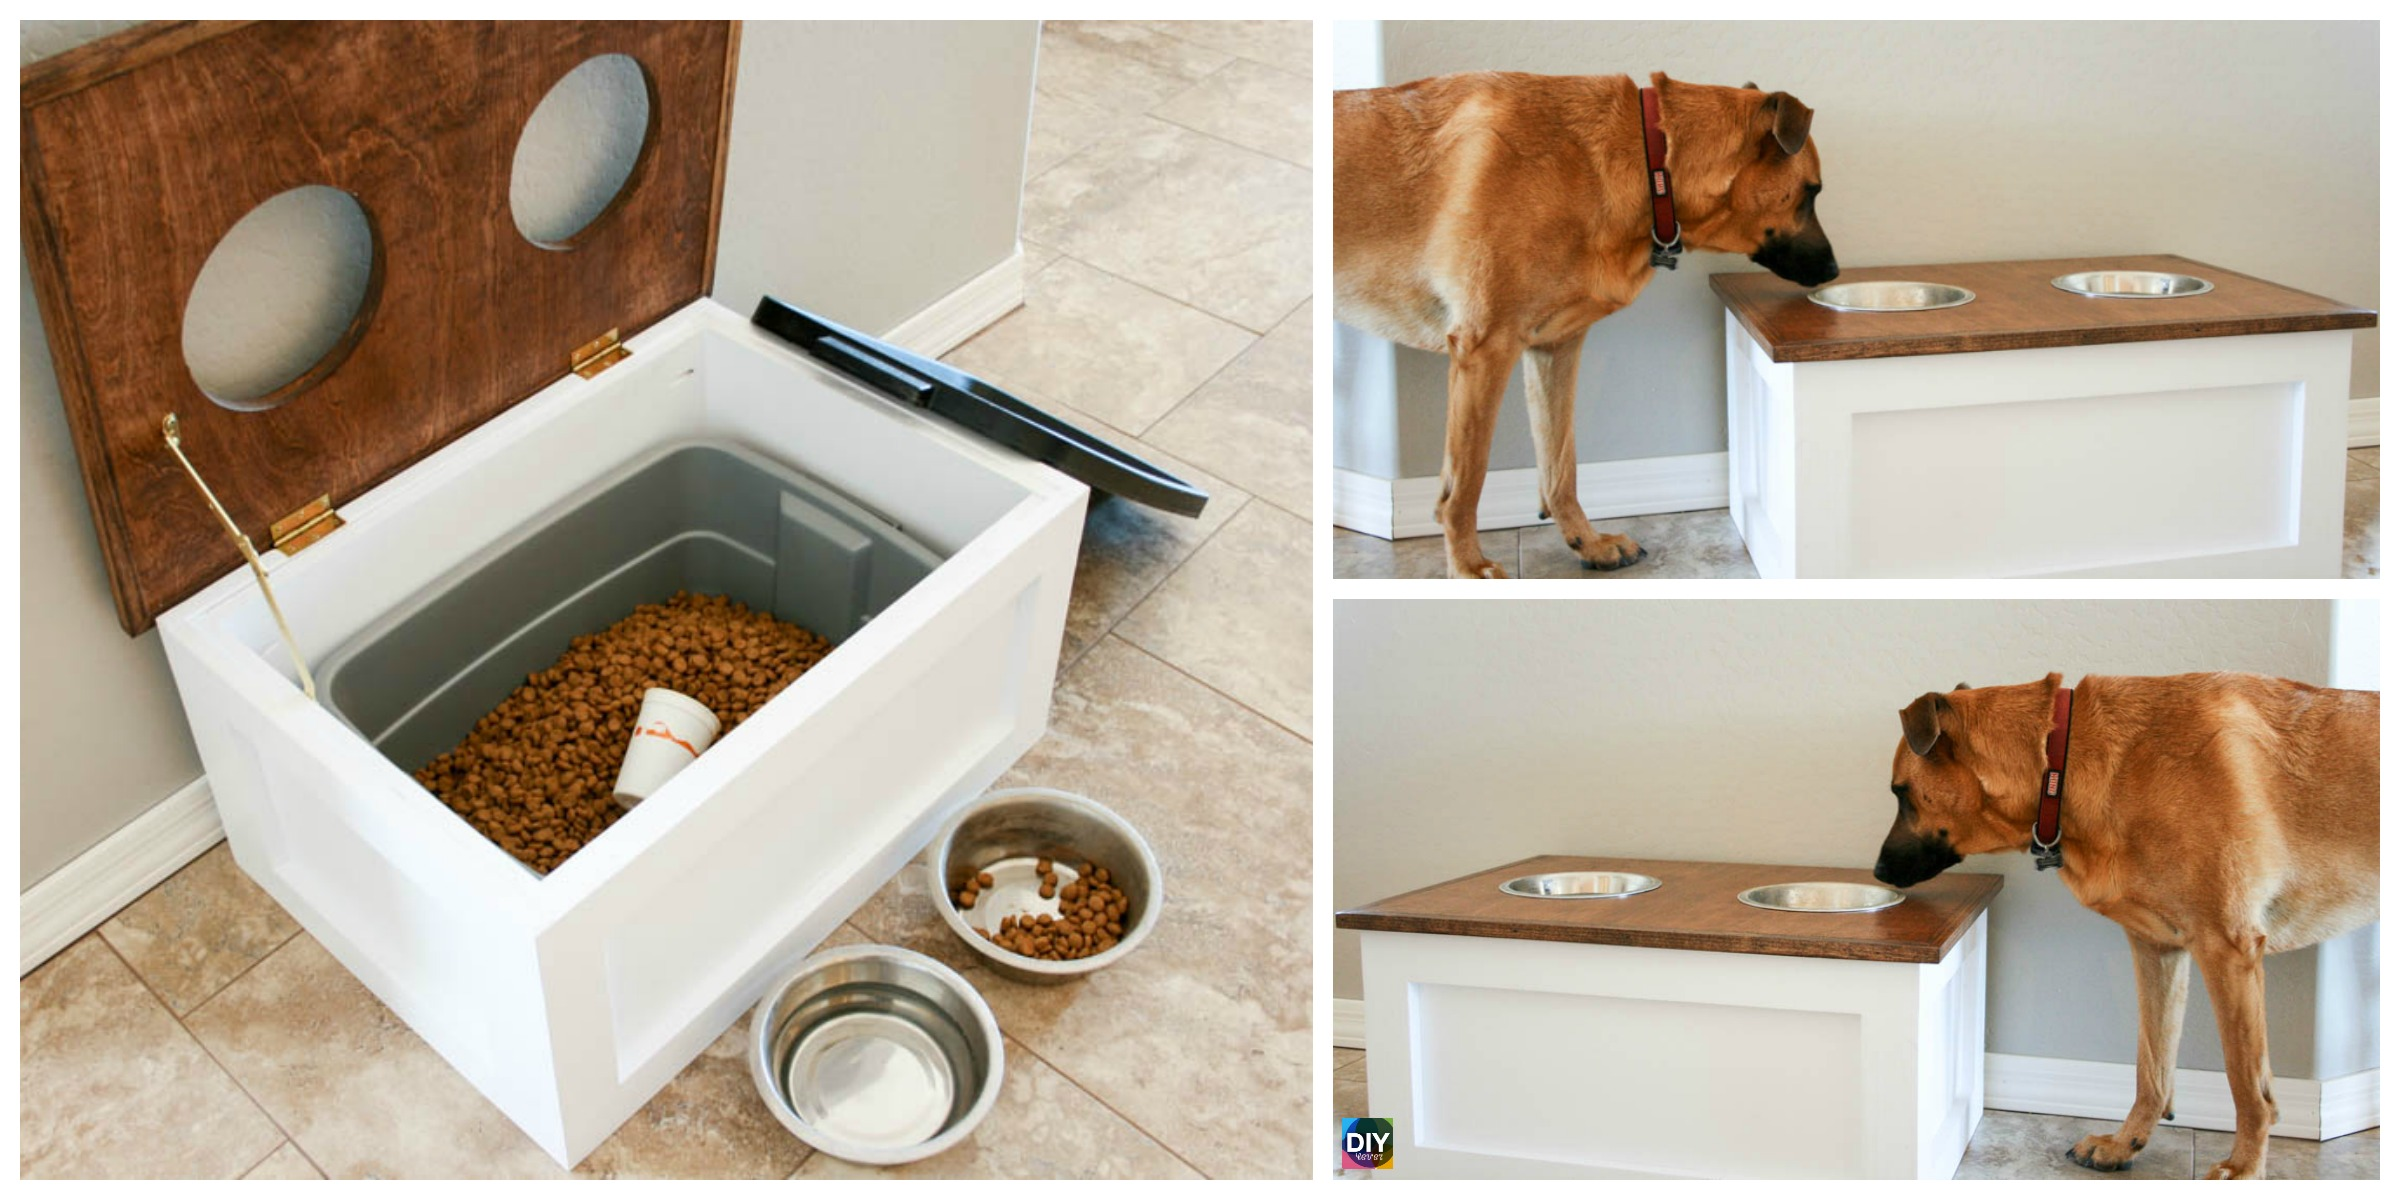 How to DIY Dog Food Station with Storage